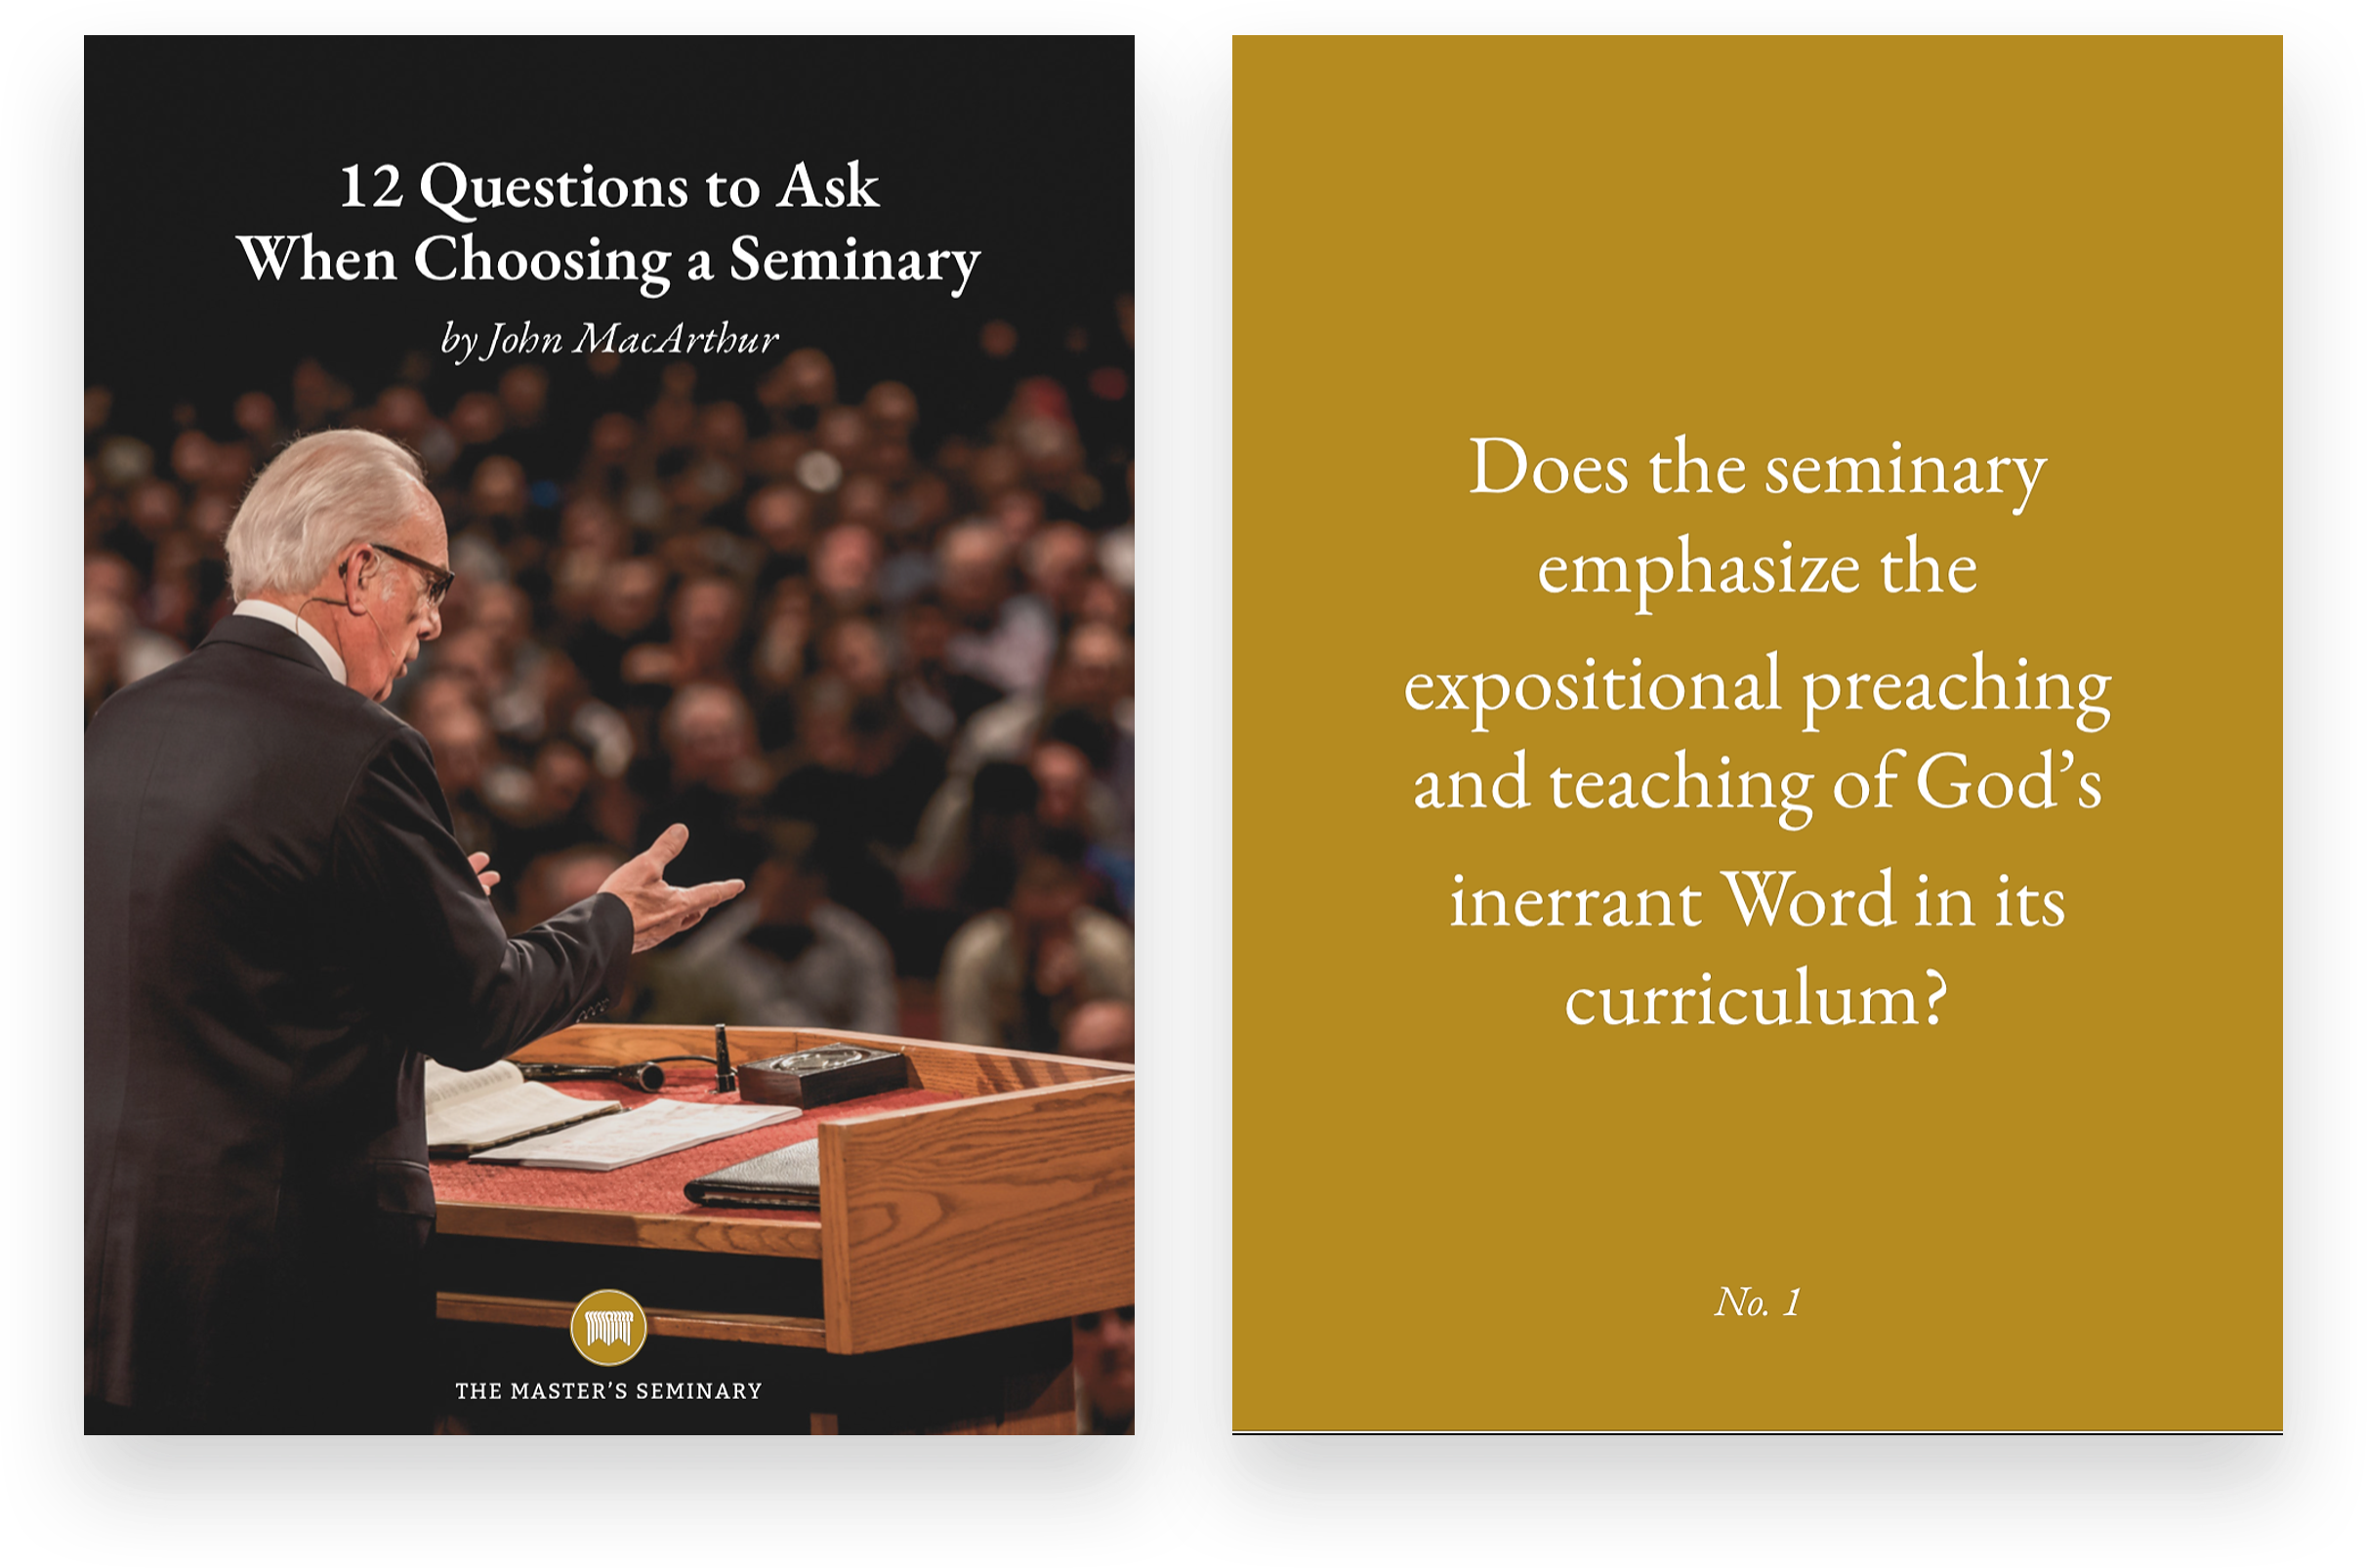 12 Questions to Ask When Choosing a Seminary